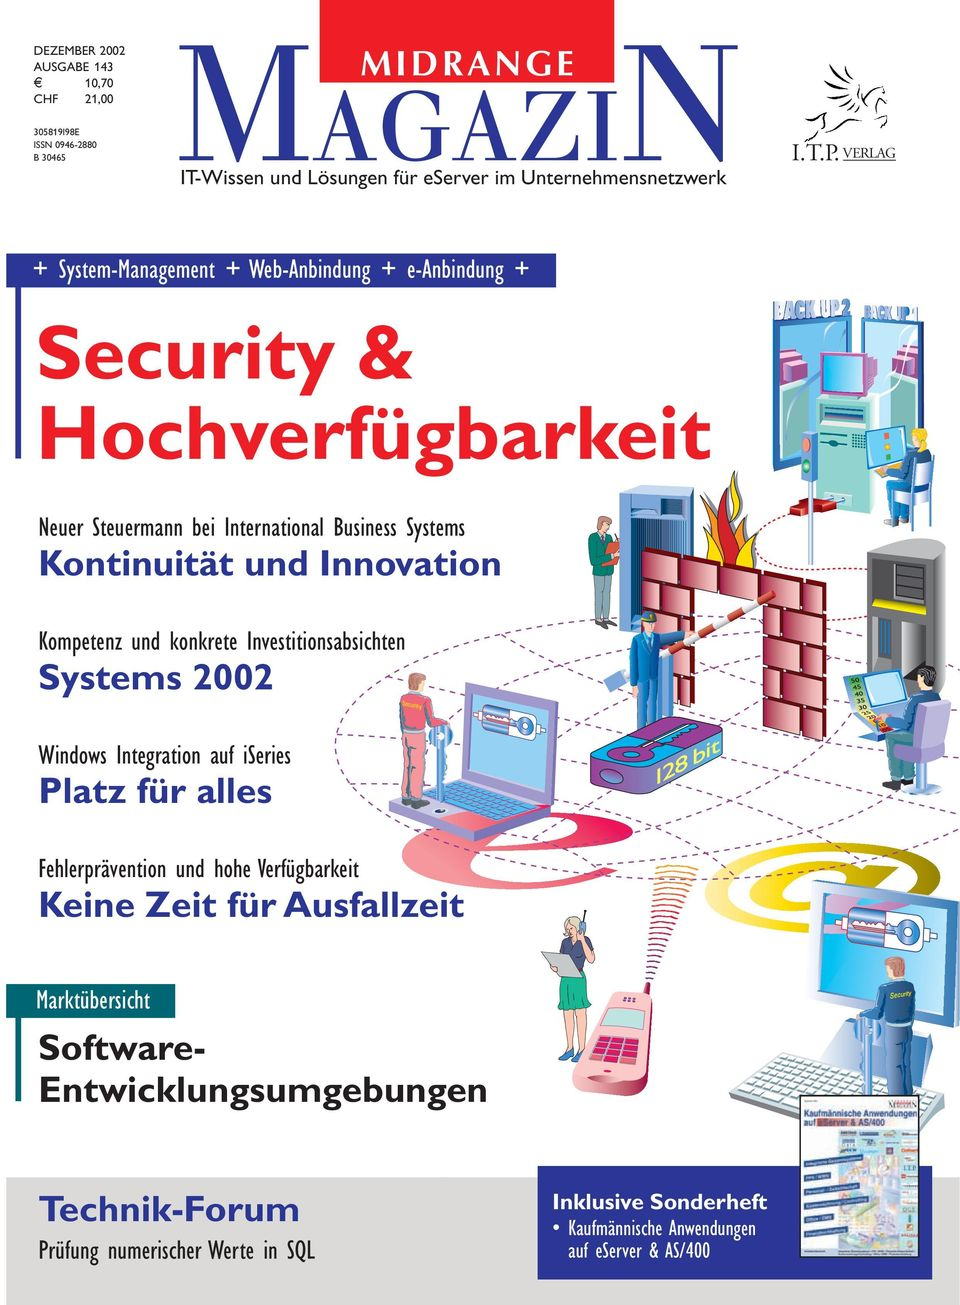 Innovation Kompetenz und konkrete Investitionsabsichten Systems 2002 Windows Integration auf iseries Platz für alles Fehlerprävention und hohe Verfügbarkeit Keine